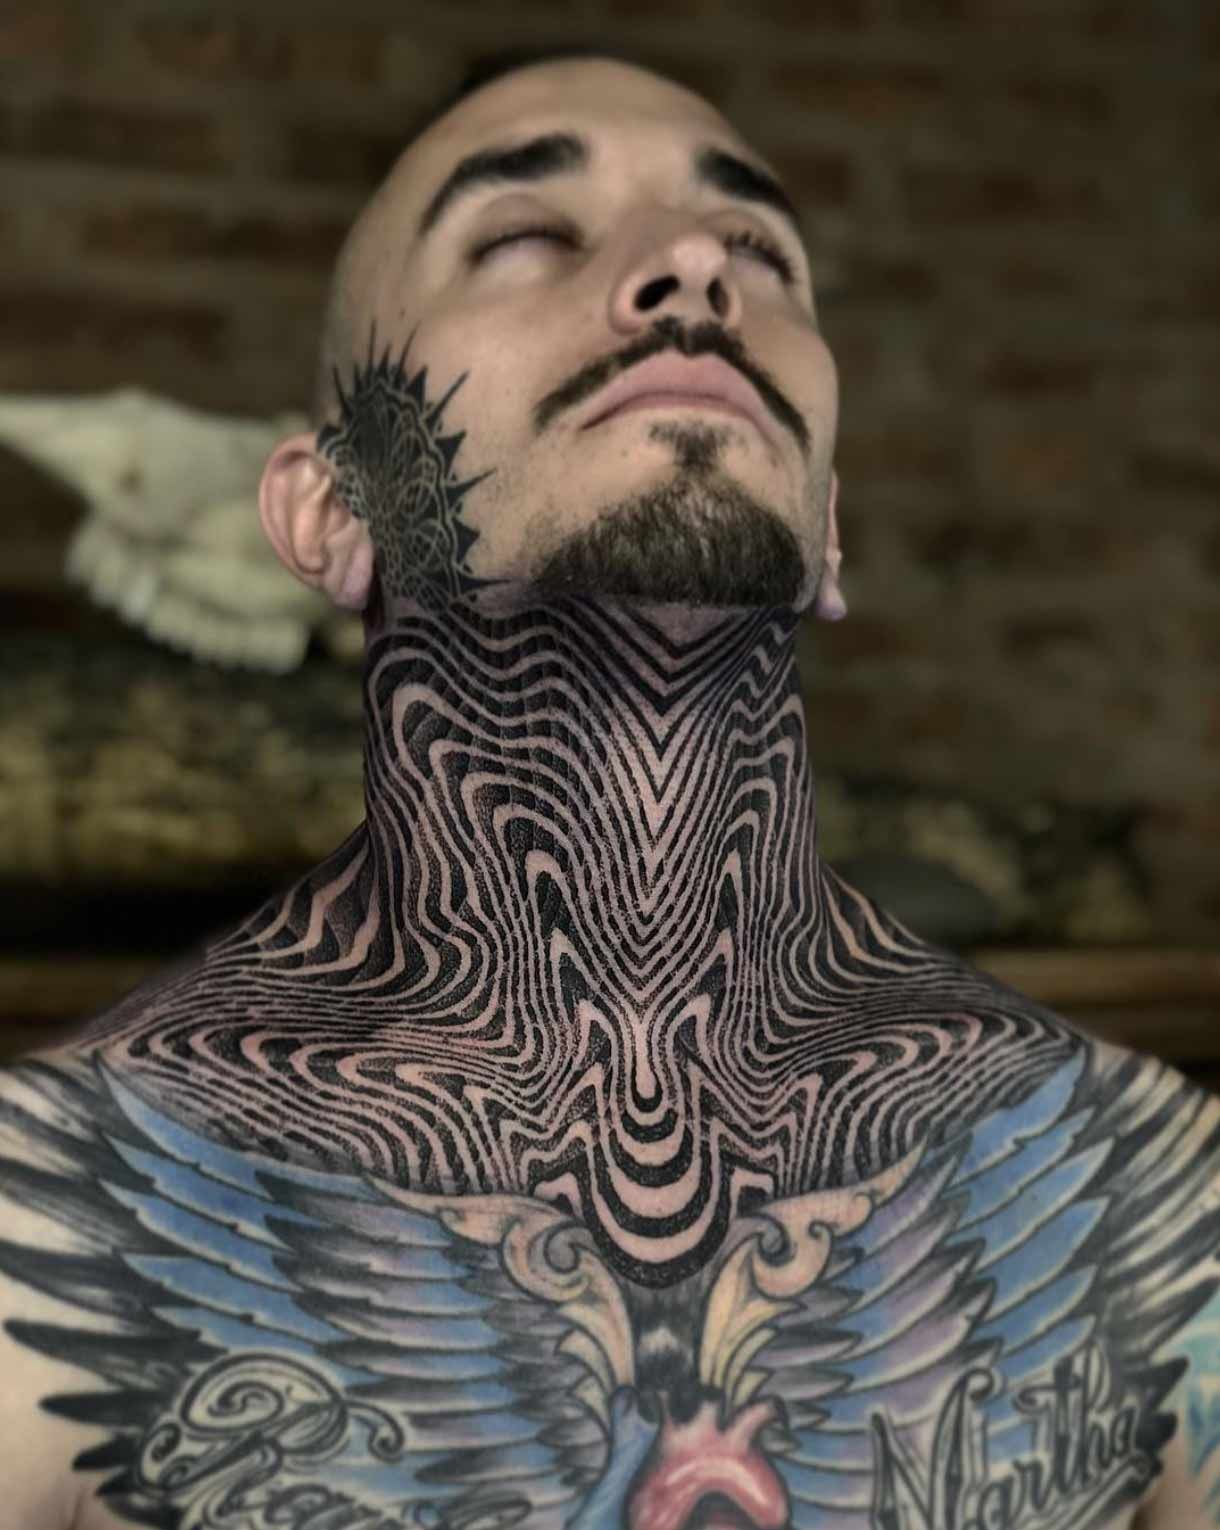 Geometric Neck Tattoo In 2020 Tattoos For Guys Neck Tattoo Neck Tattoo For Guys